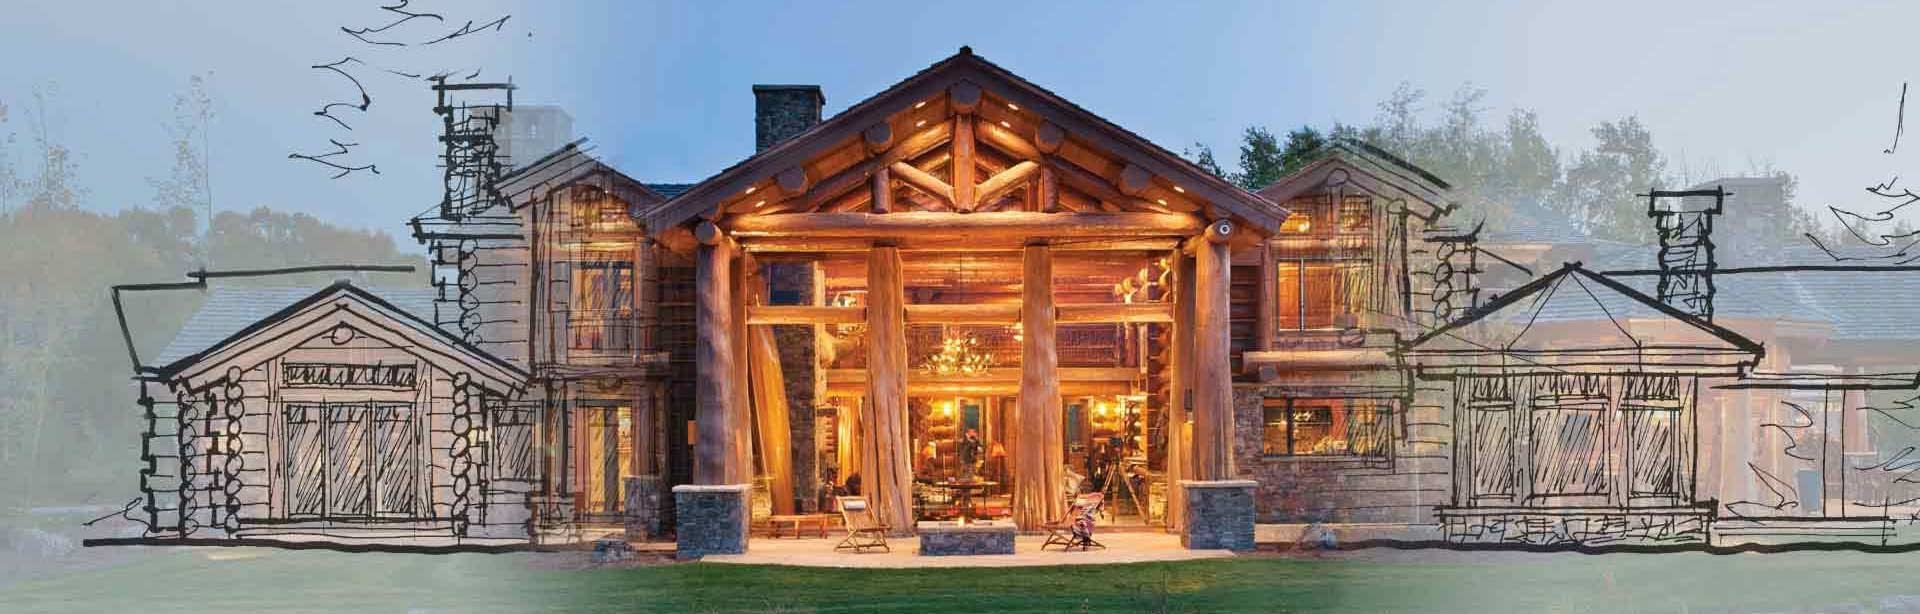 Custom log home design